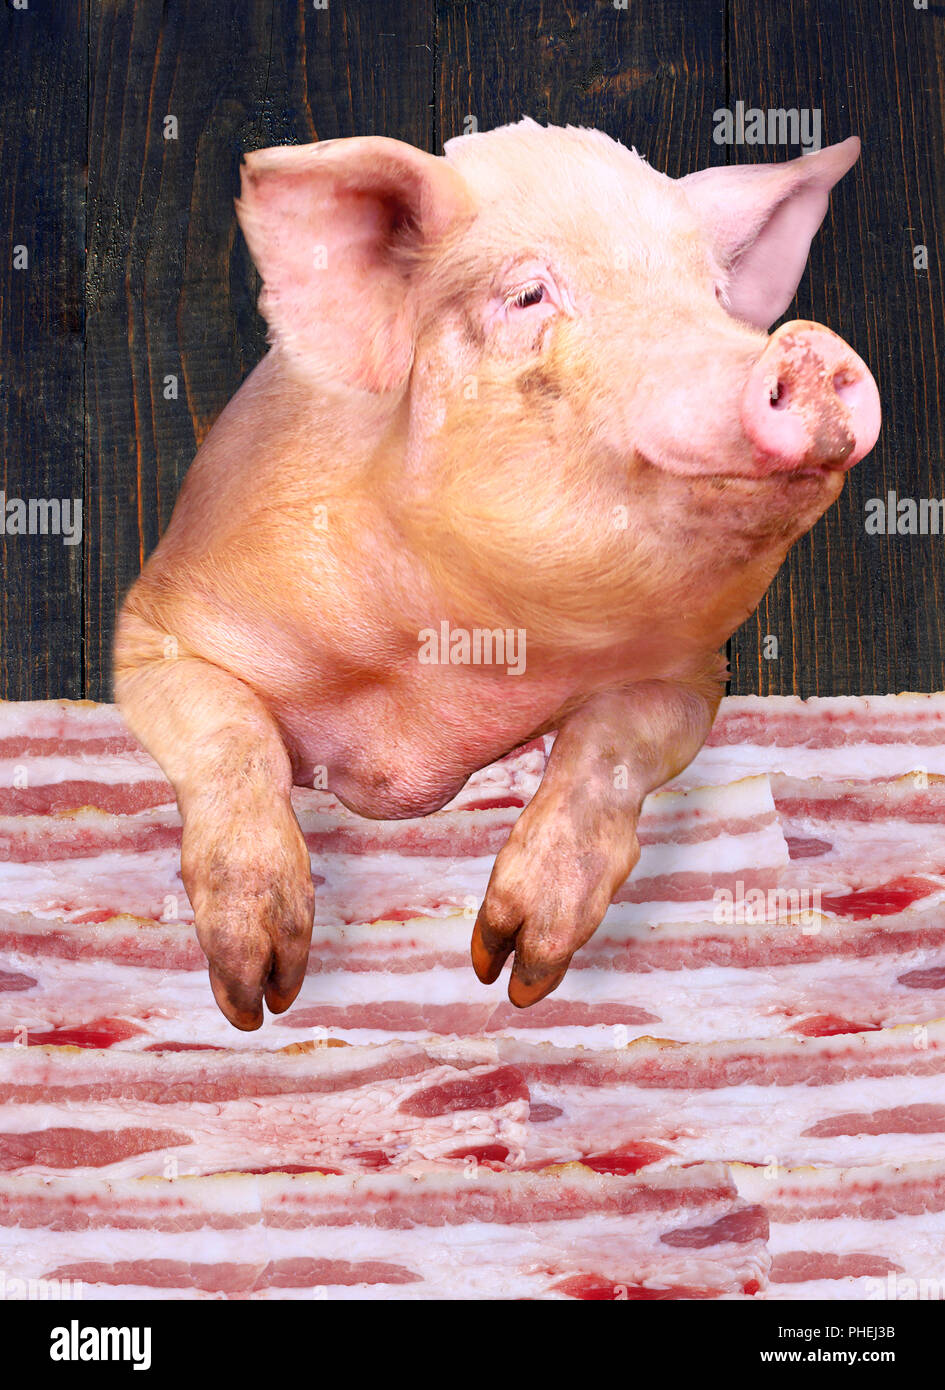 pig looks out over the layers of lards - Stock Image